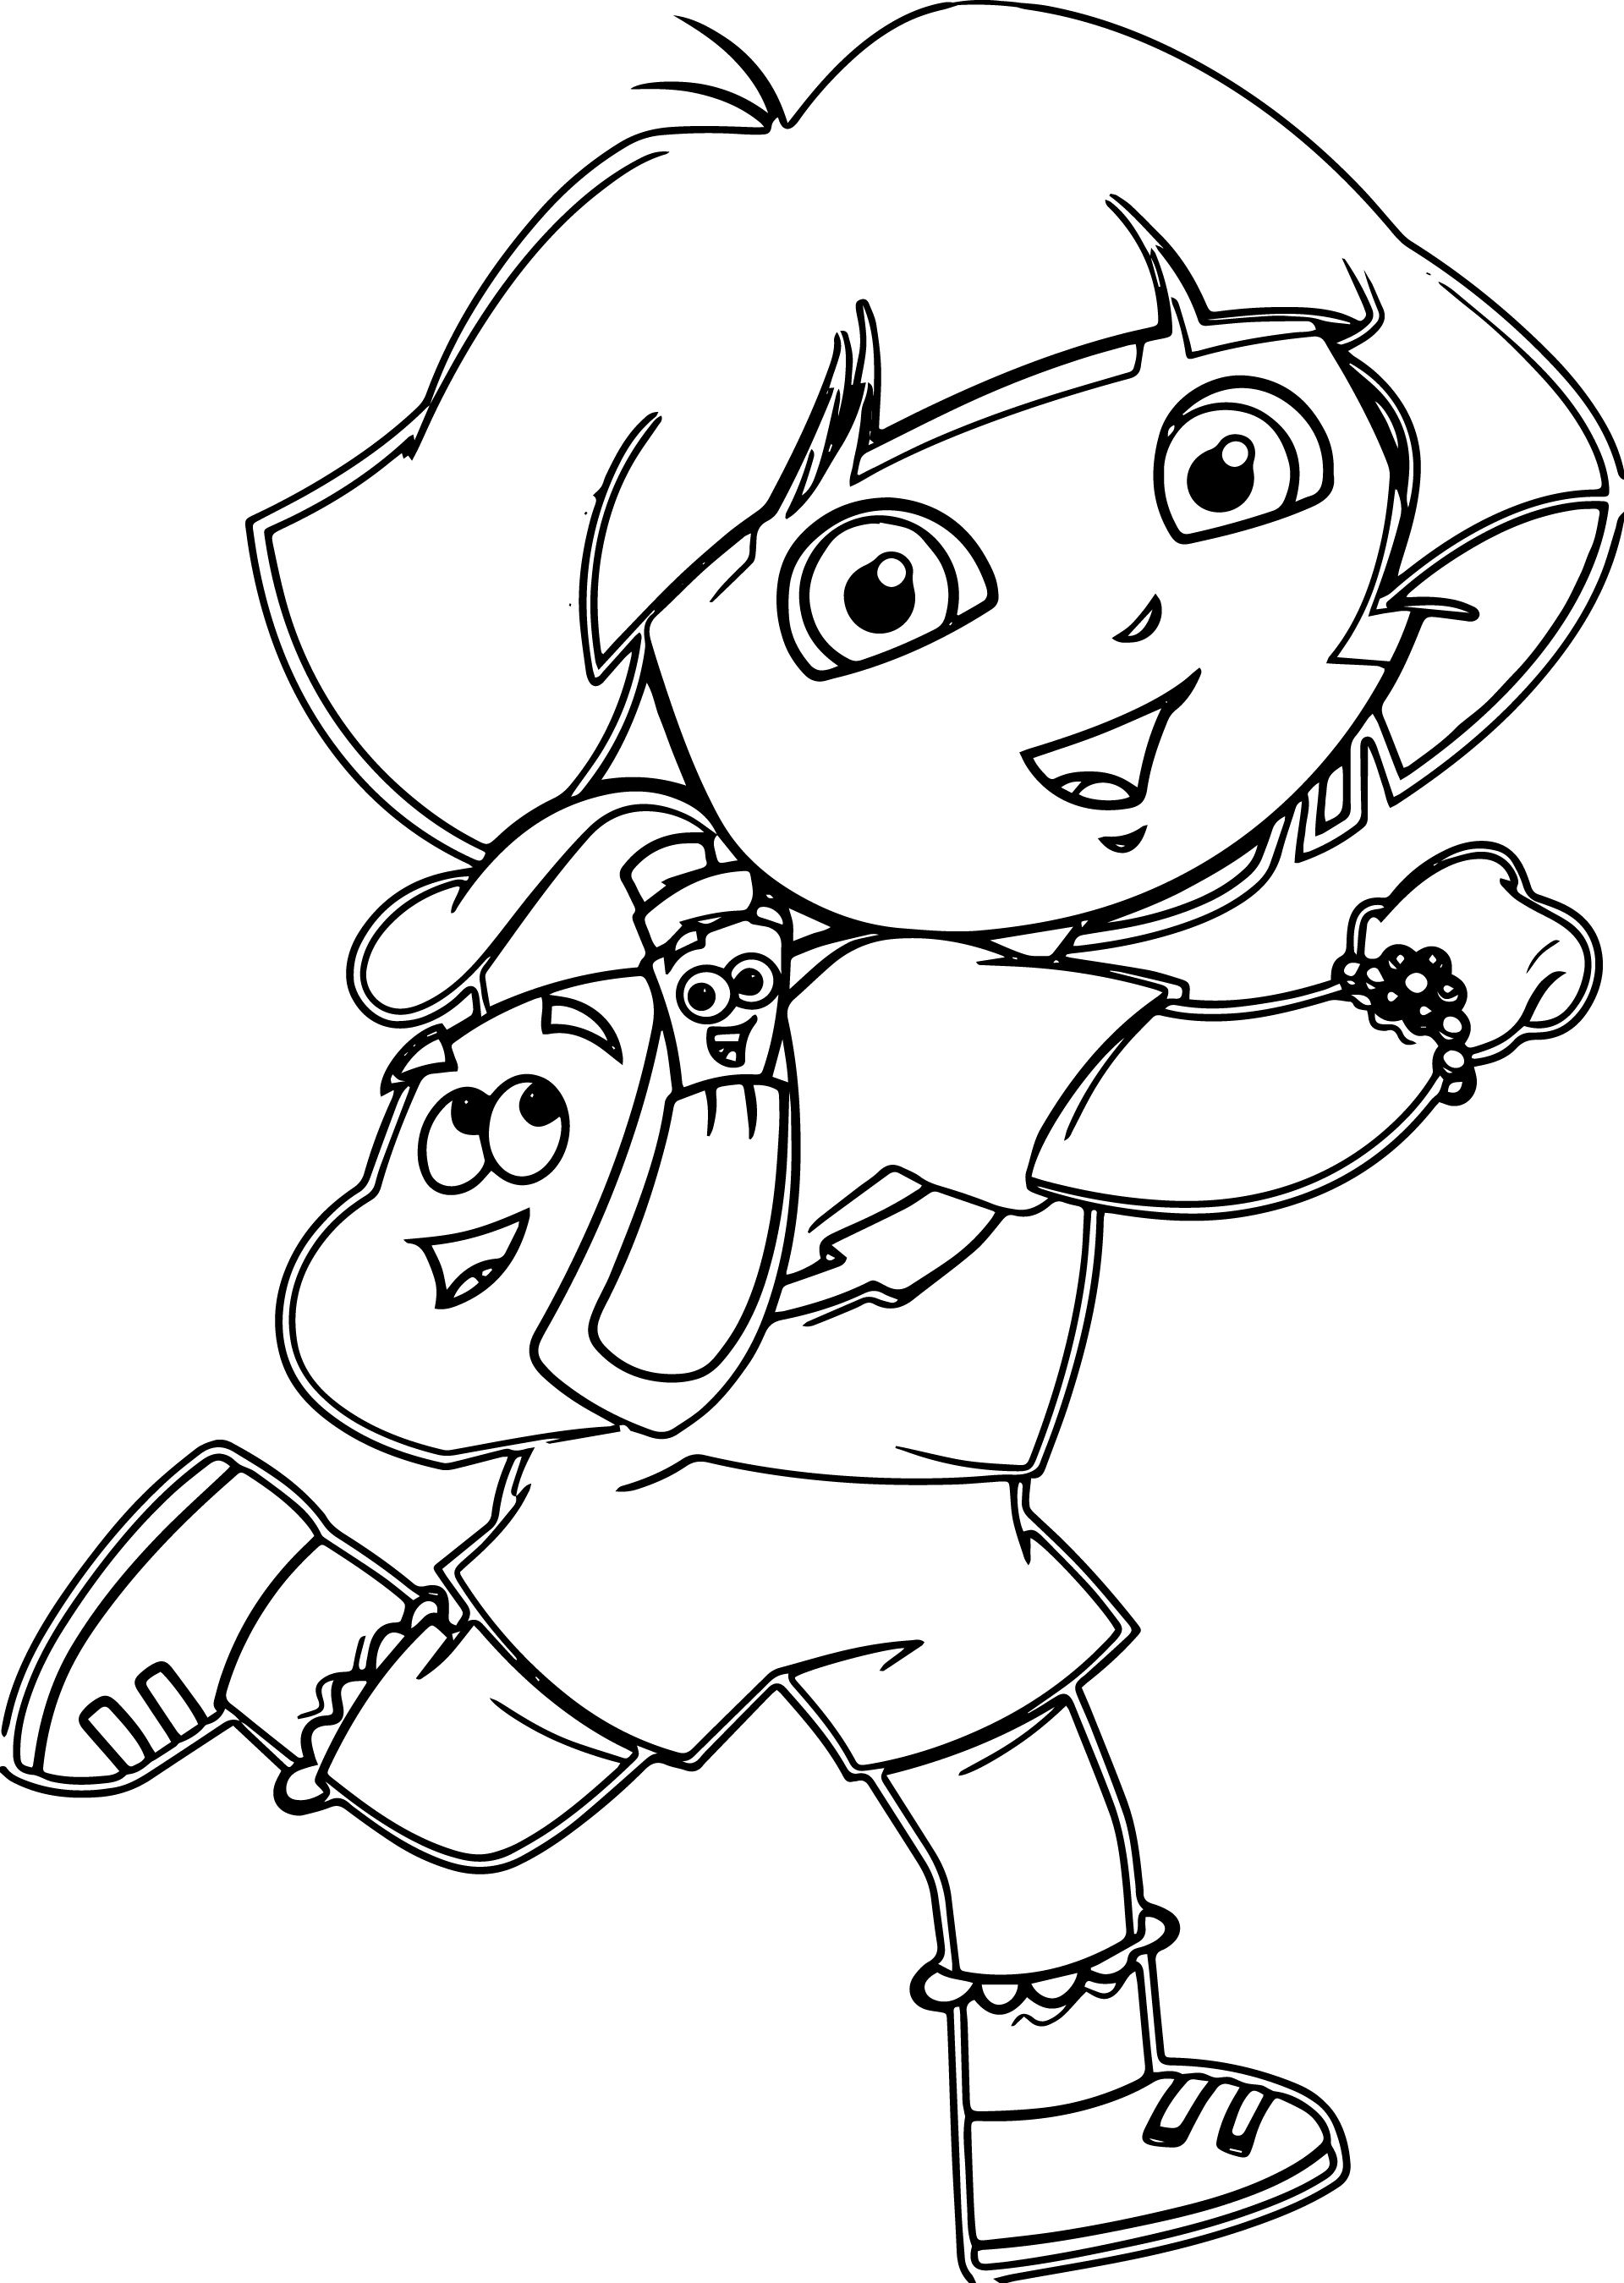 dora coloring pages online free 166 best images about dora coloring pages on pinterest online coloring dora pages free